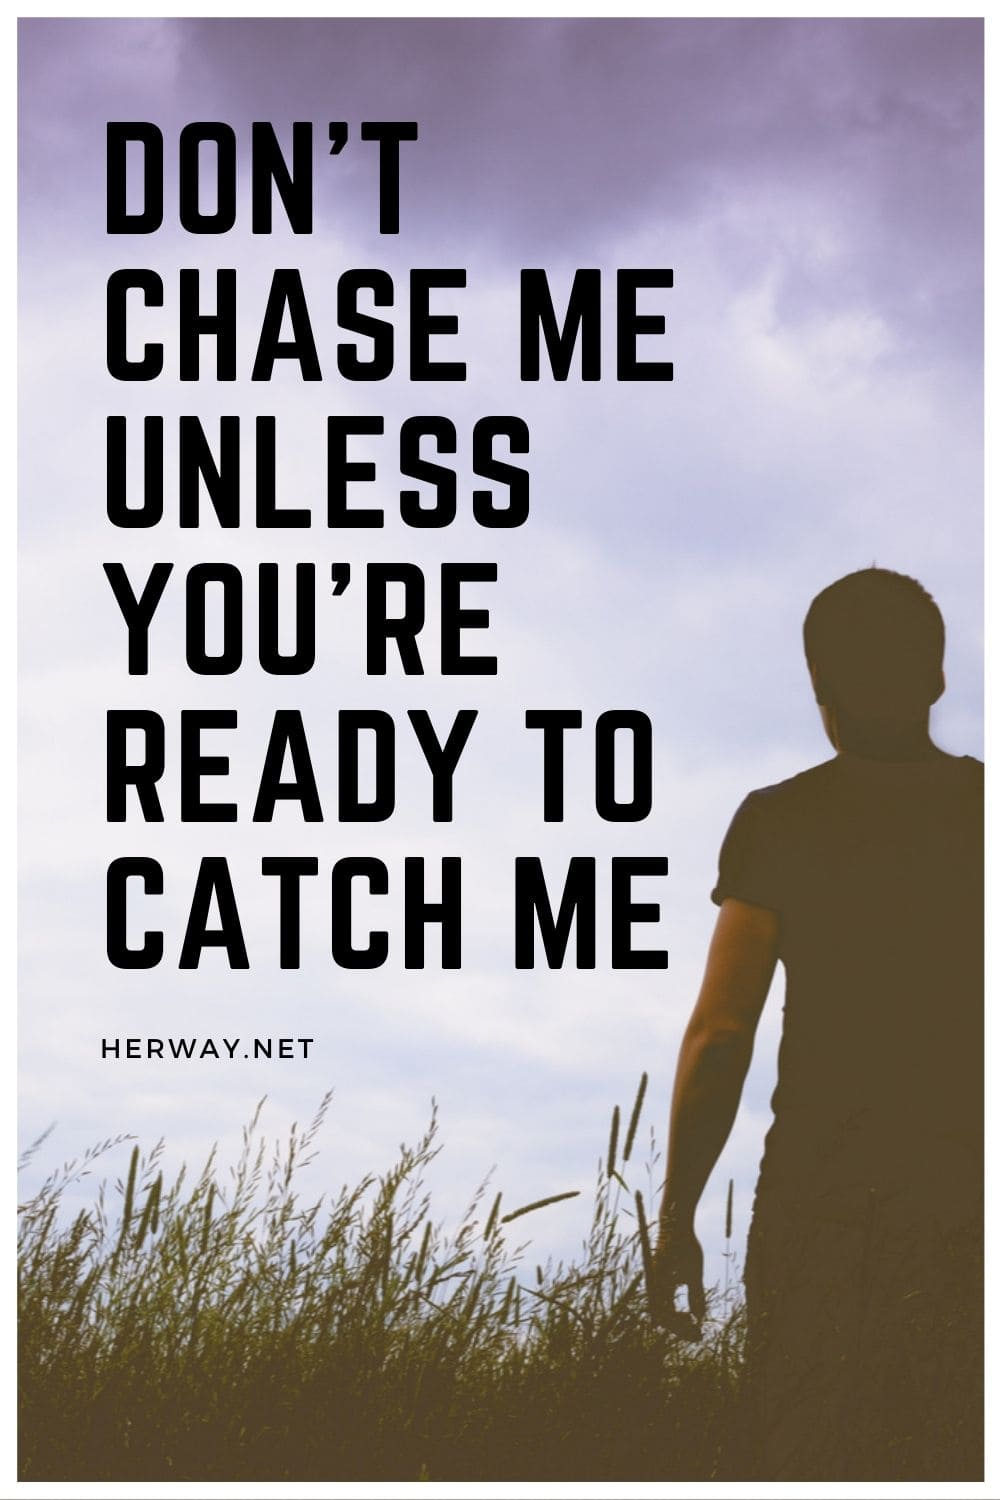 Don't Chase Me Unless You're Ready To Catch Me